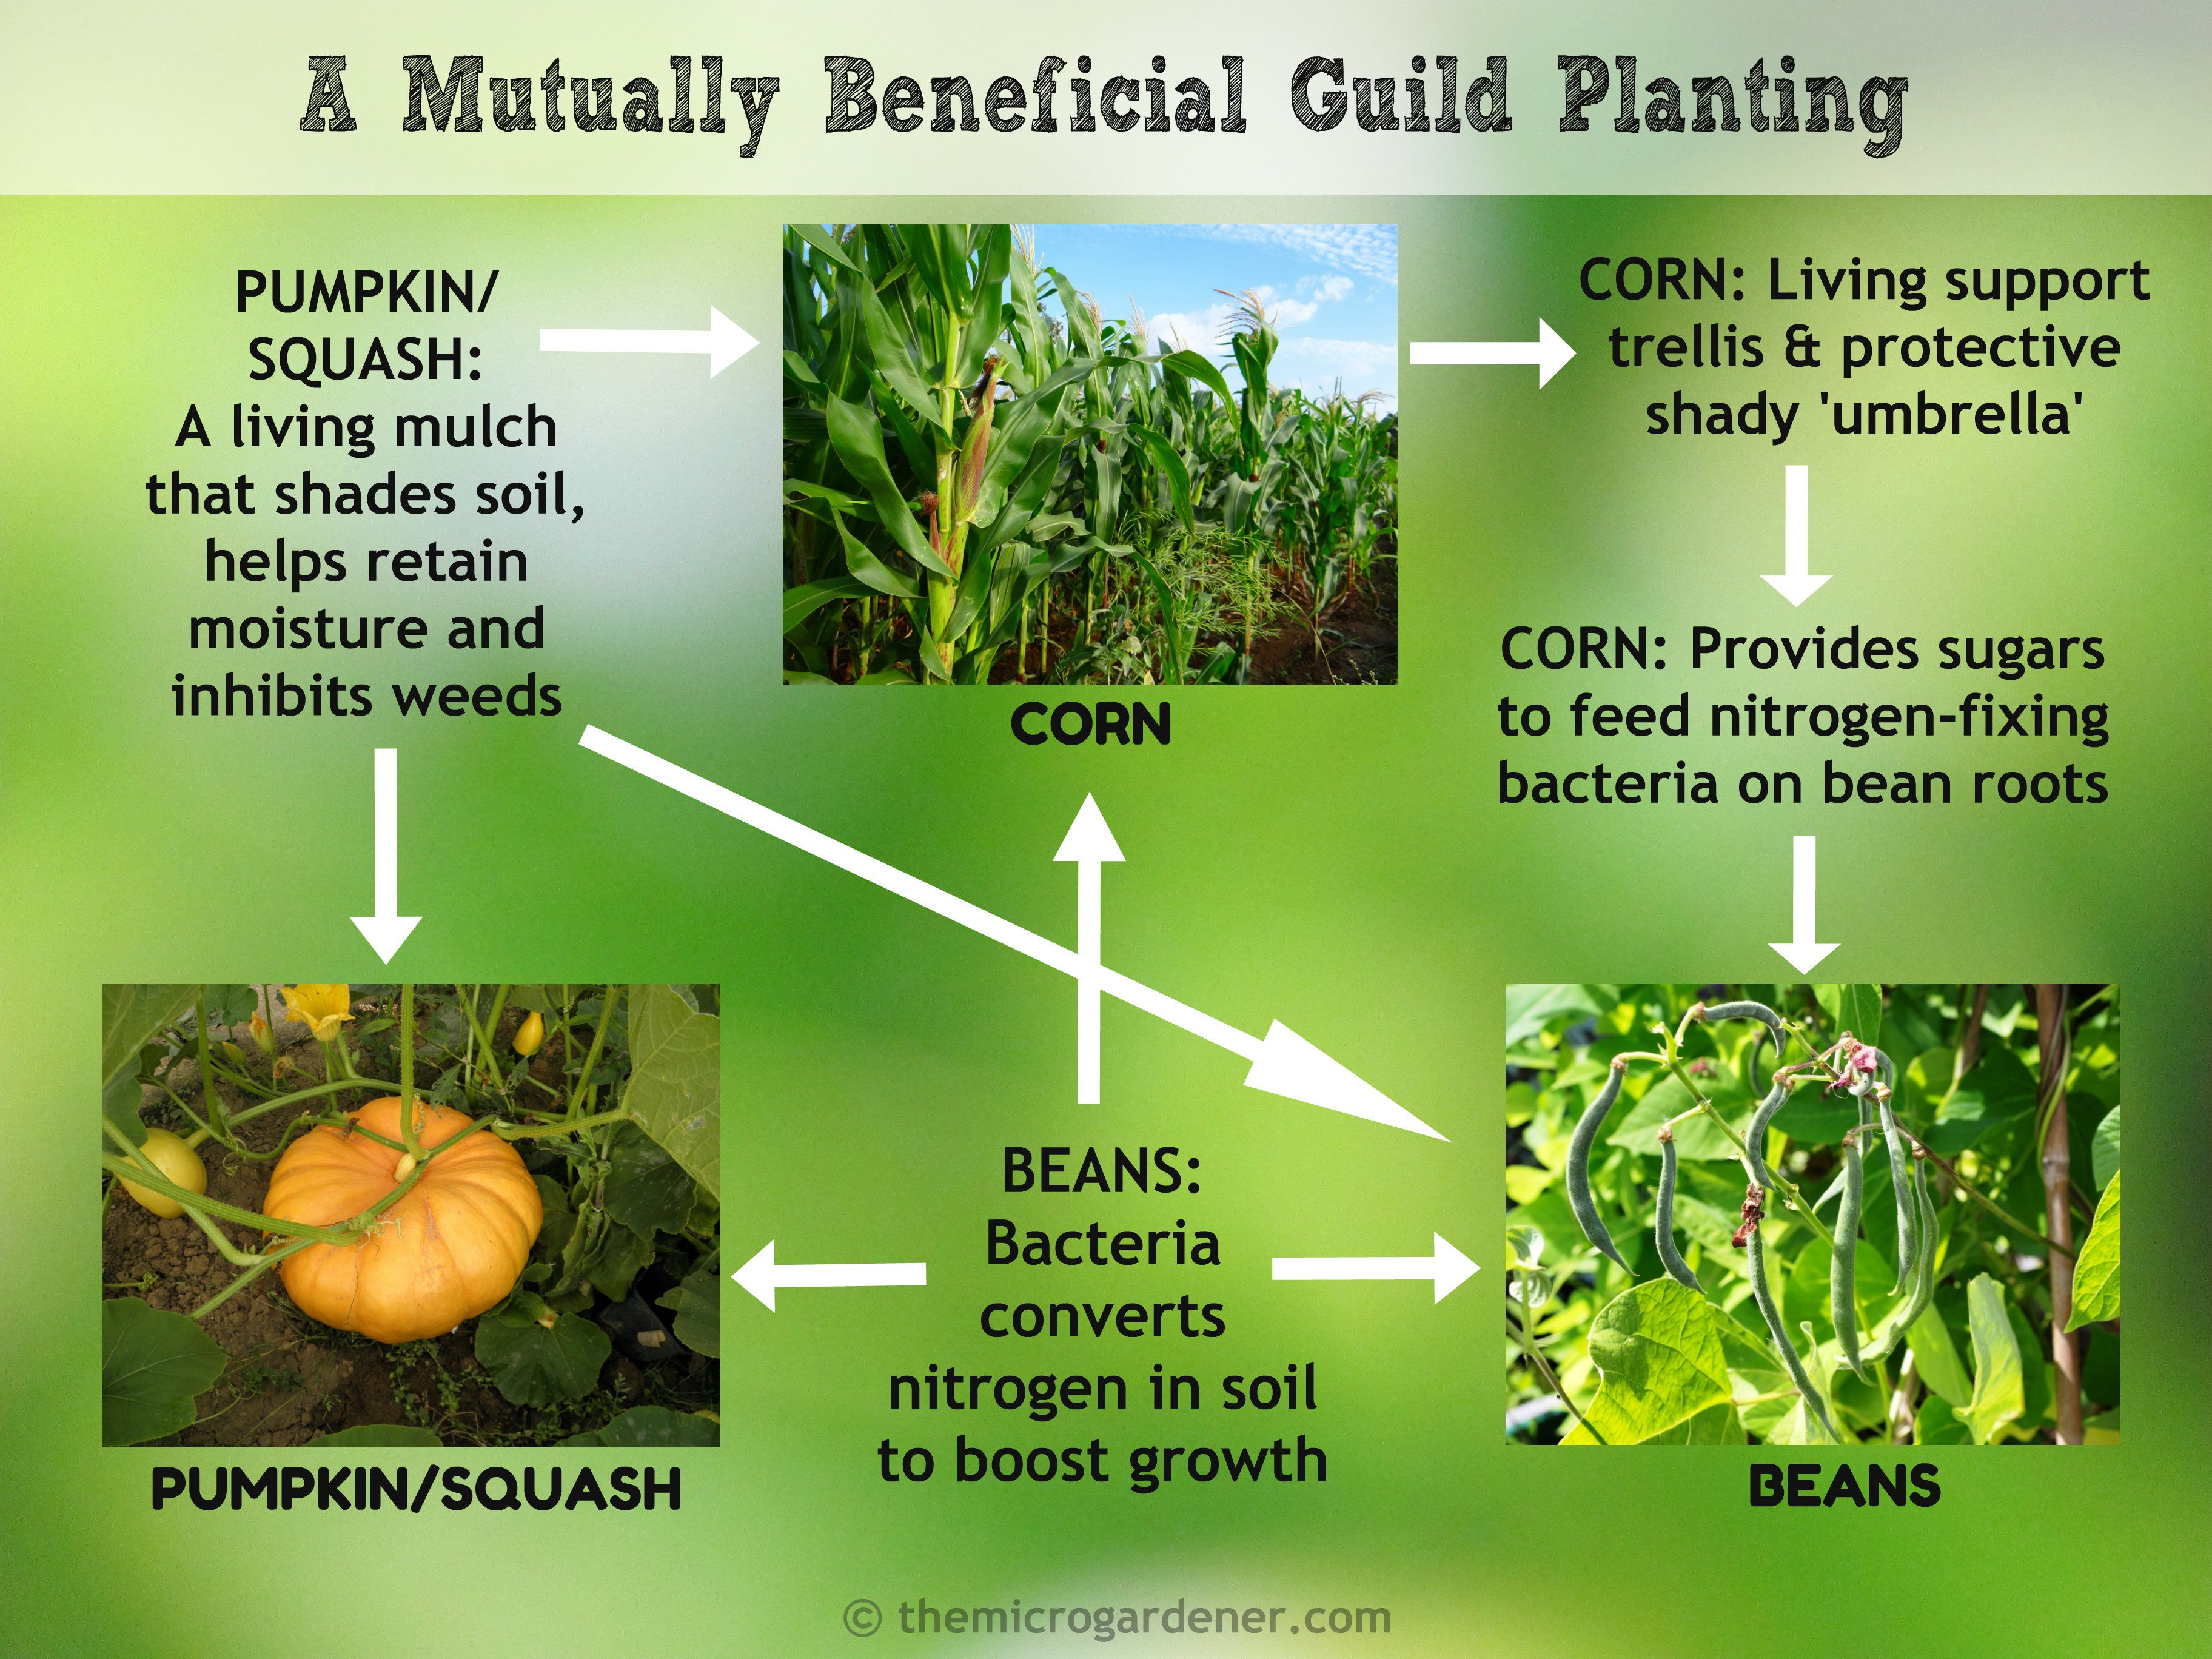 Planting tip interplant the three sisters beans corn three sisters beans corn pumpkinsquash a mutually beneficial guild planting pooptronica Images